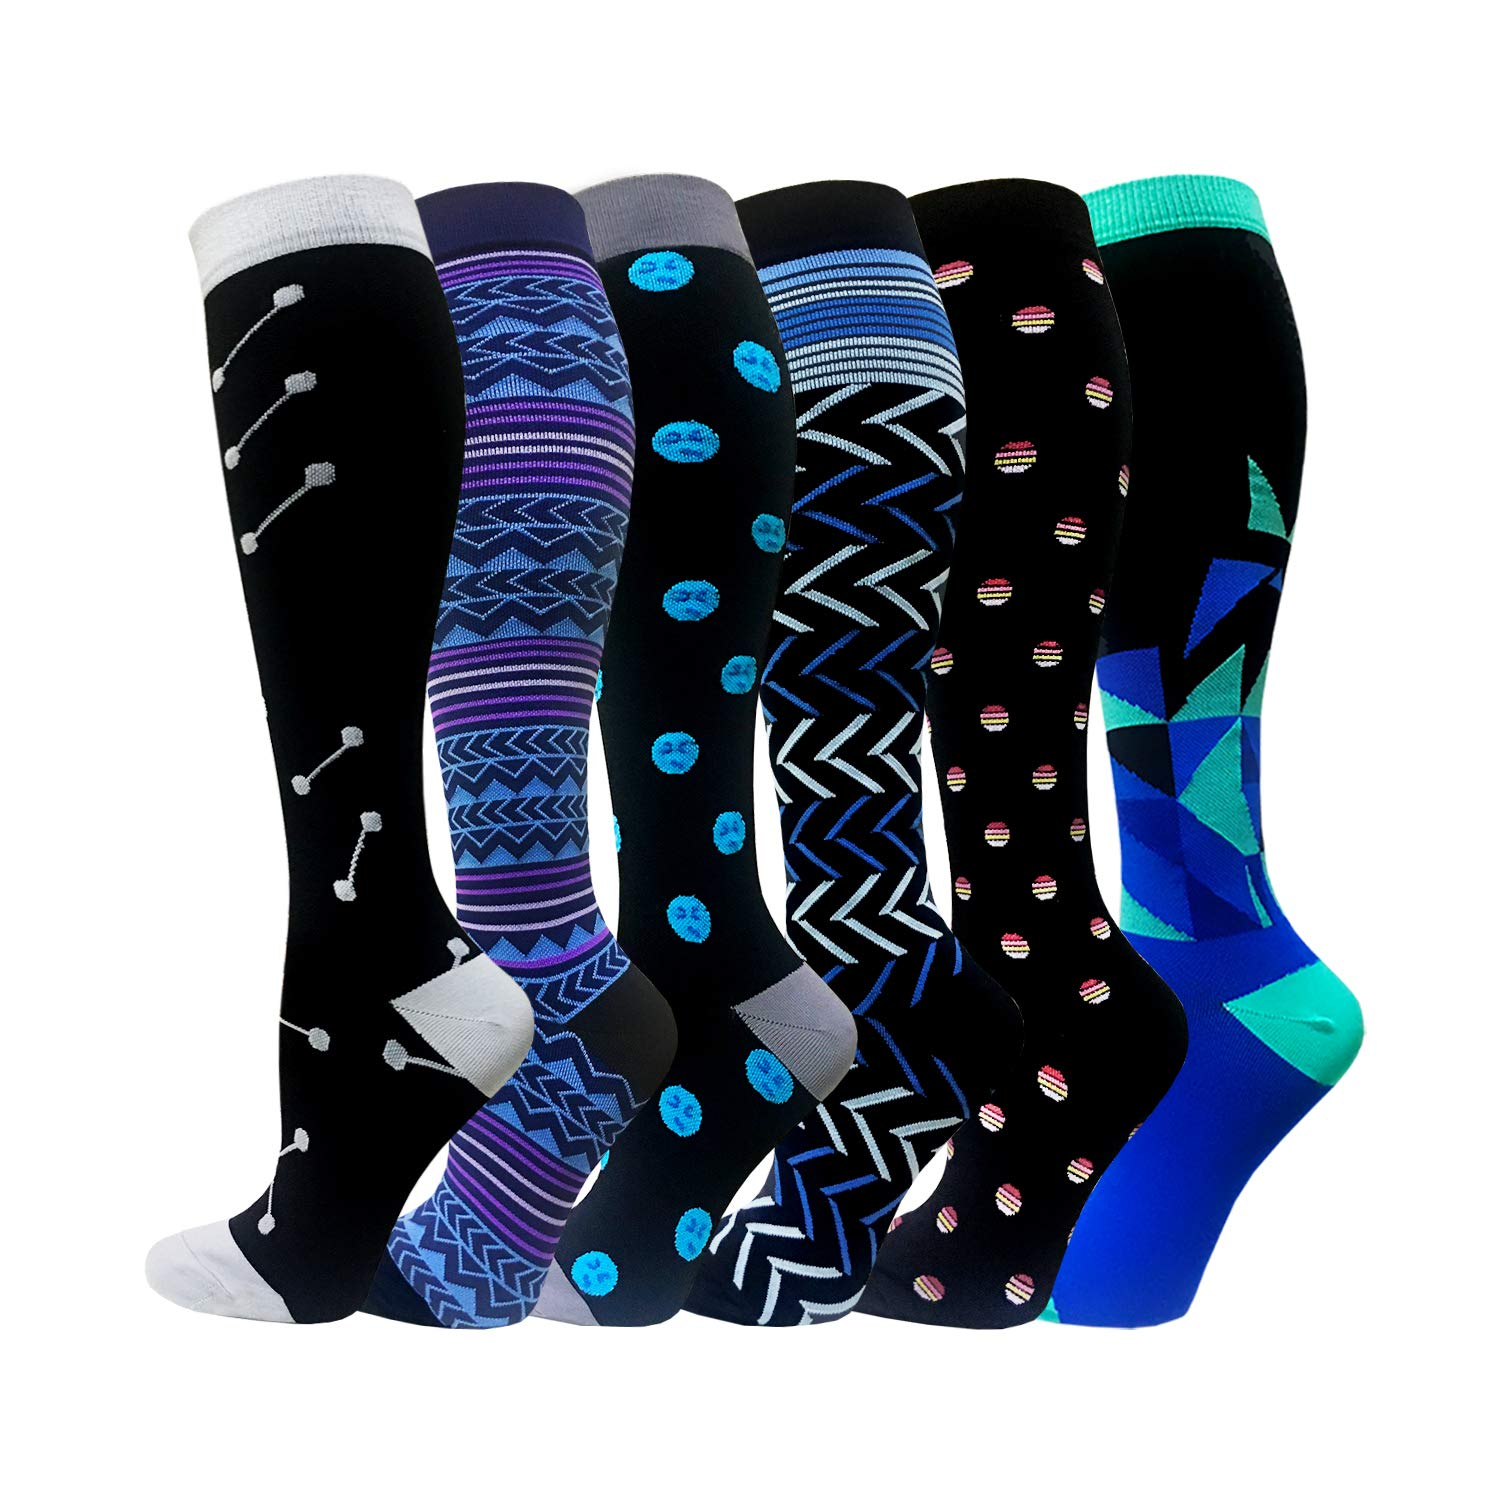 Compression Socks for Women /& Men 15-20mmHg Best Knee High Stockings for Running Nurses Hiking Cycling Recovery